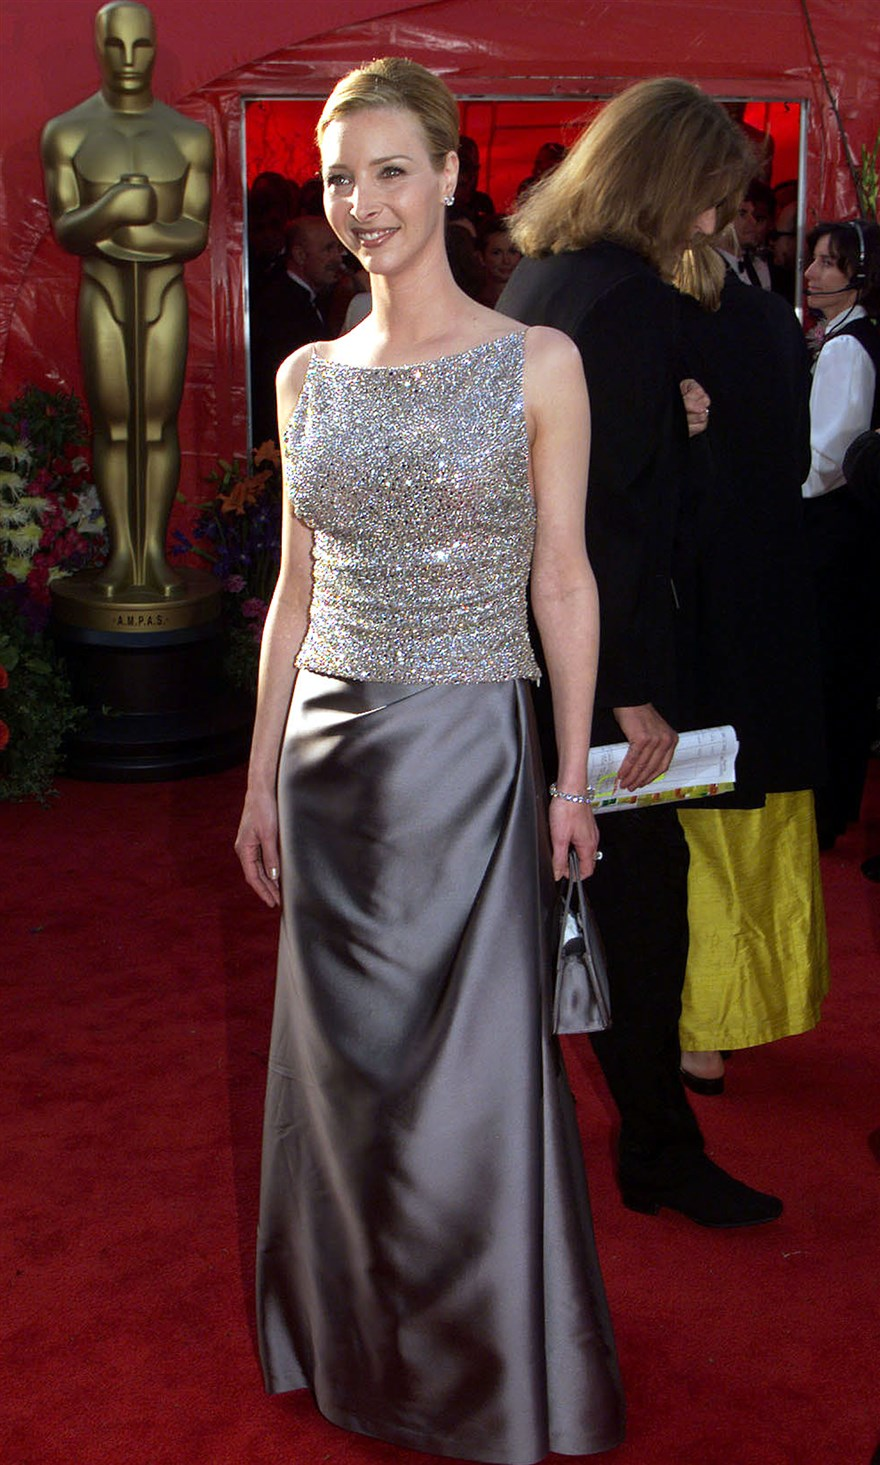 Oscars Flashback See What The 1999 Red Carpet Looked Like Red Carpet Looks Badgley Mischka Dress Valentino Gowns [ 1465 x 880 Pixel ]